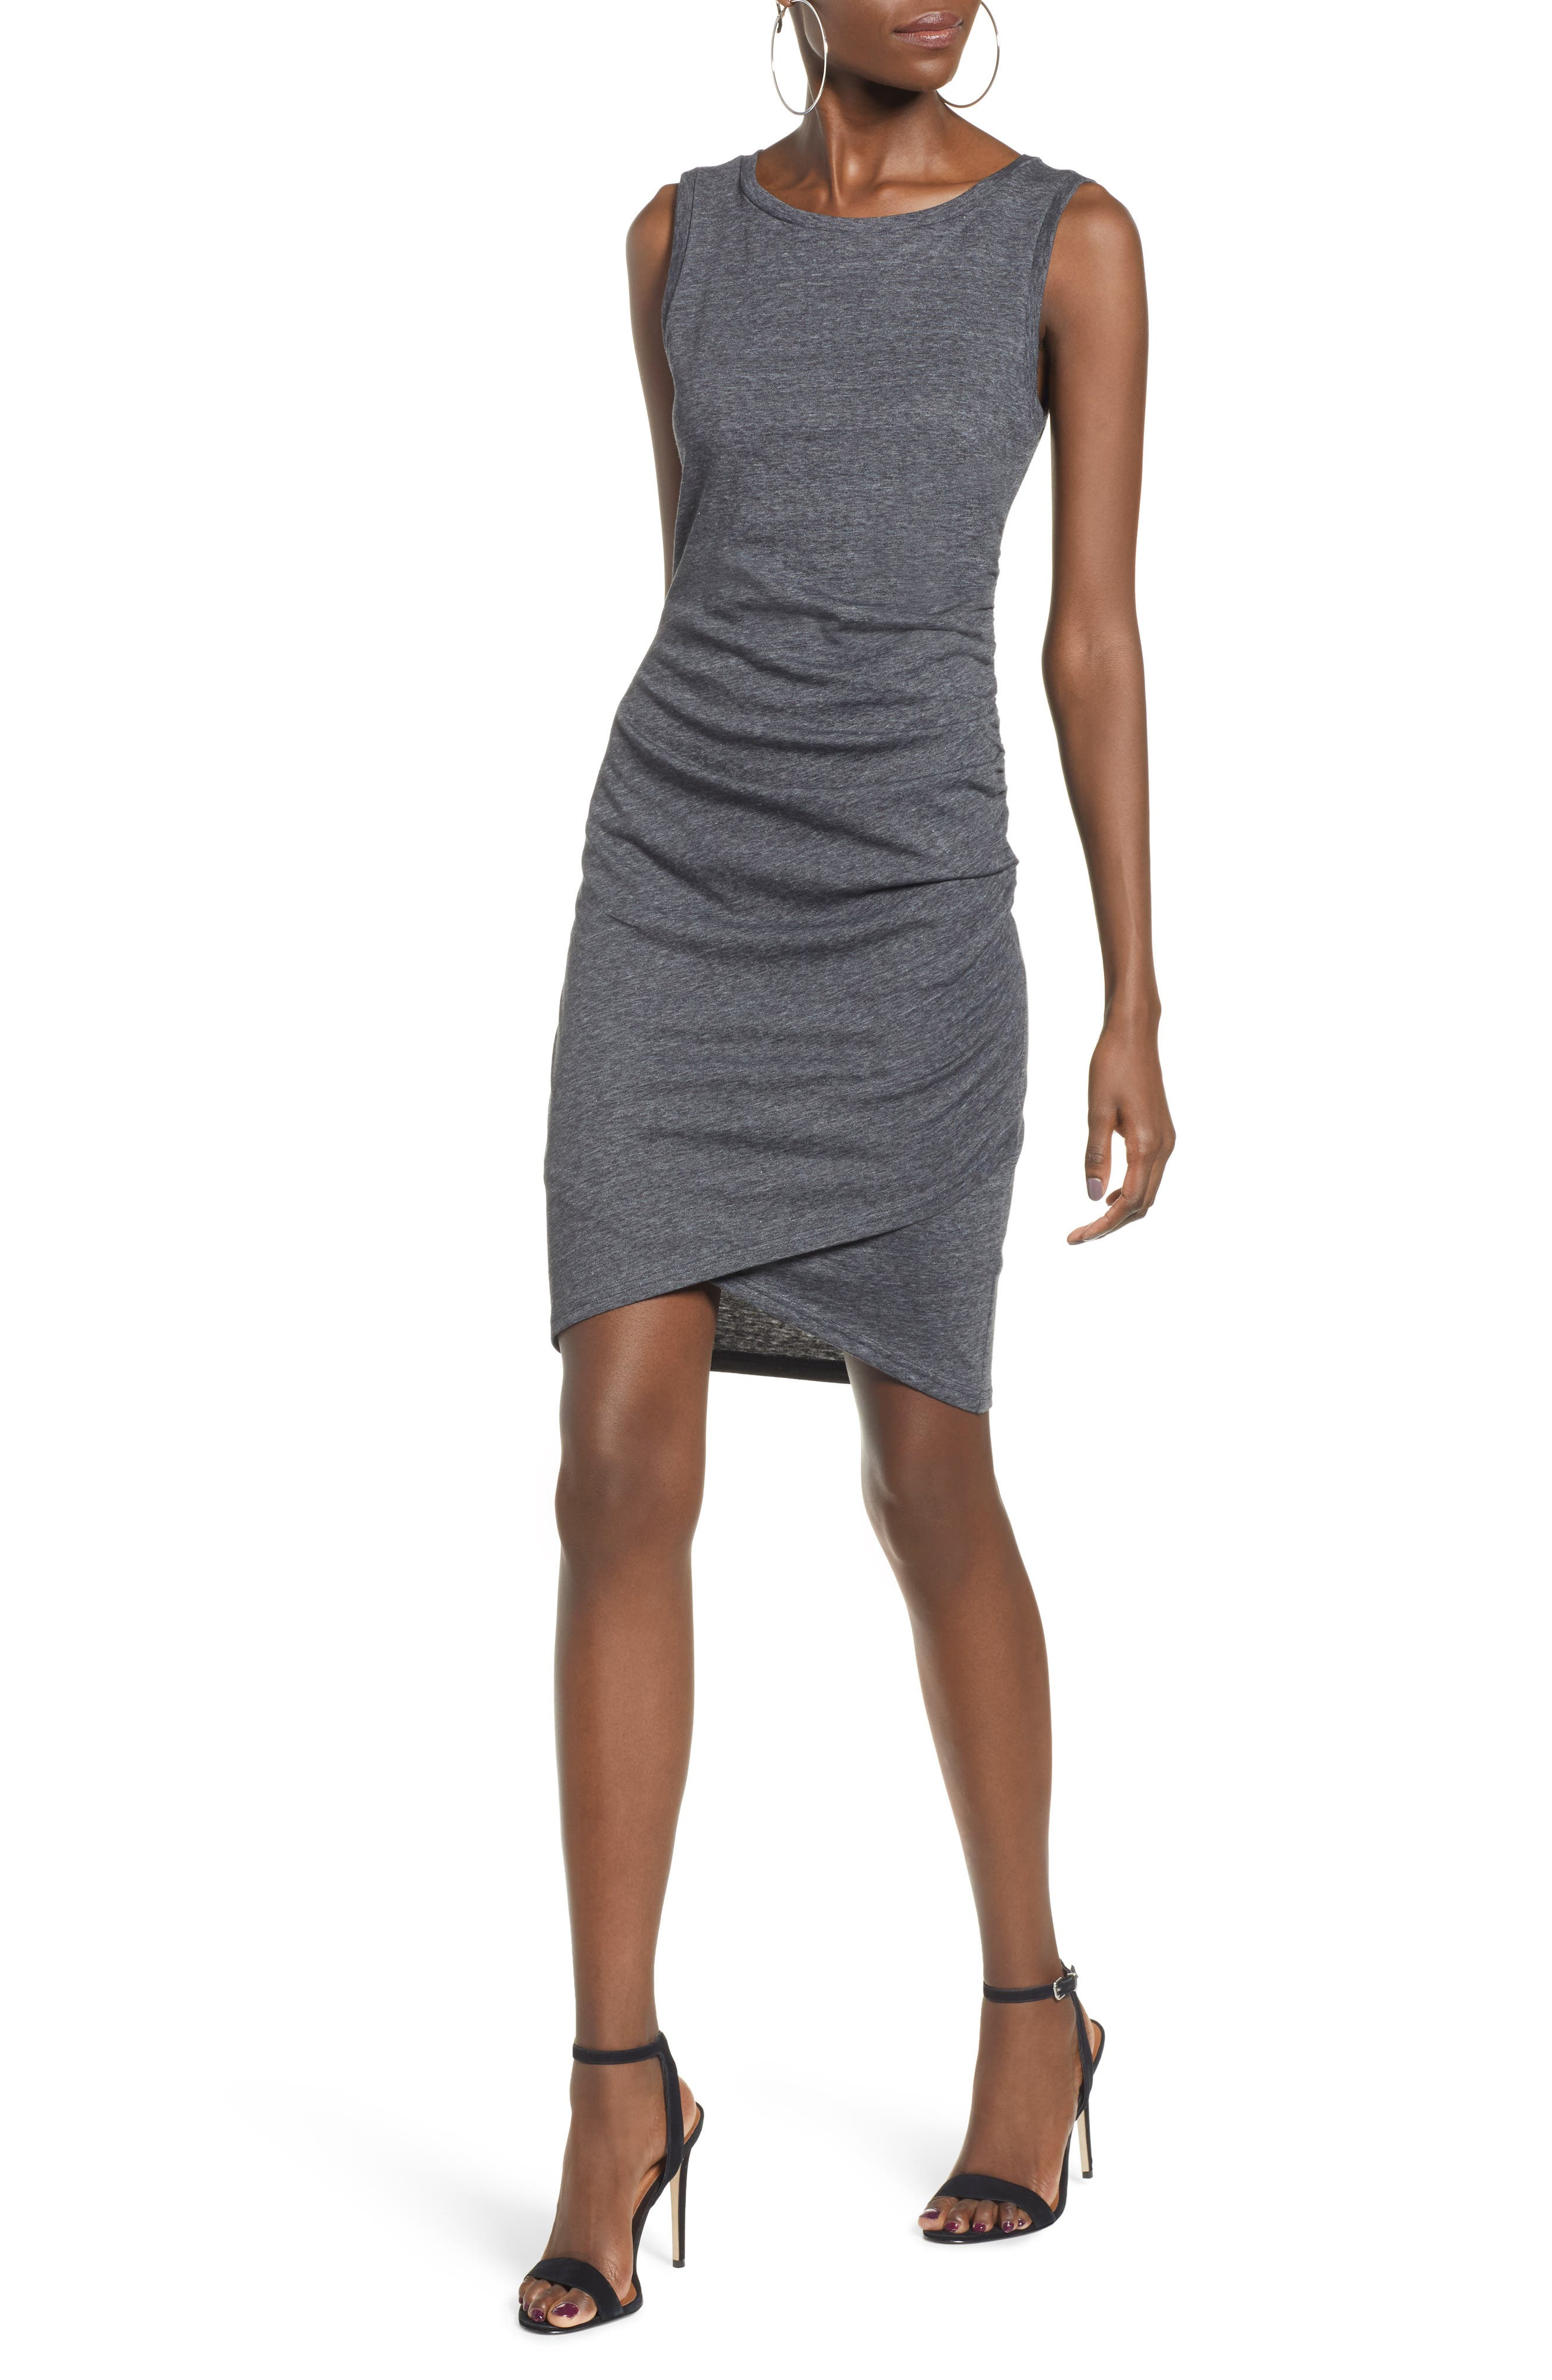 Ruched Body-Con Tank Dress,                             Main thumbnail 1, color,                             GREY MEDIUM CHARCOAL HEATHER